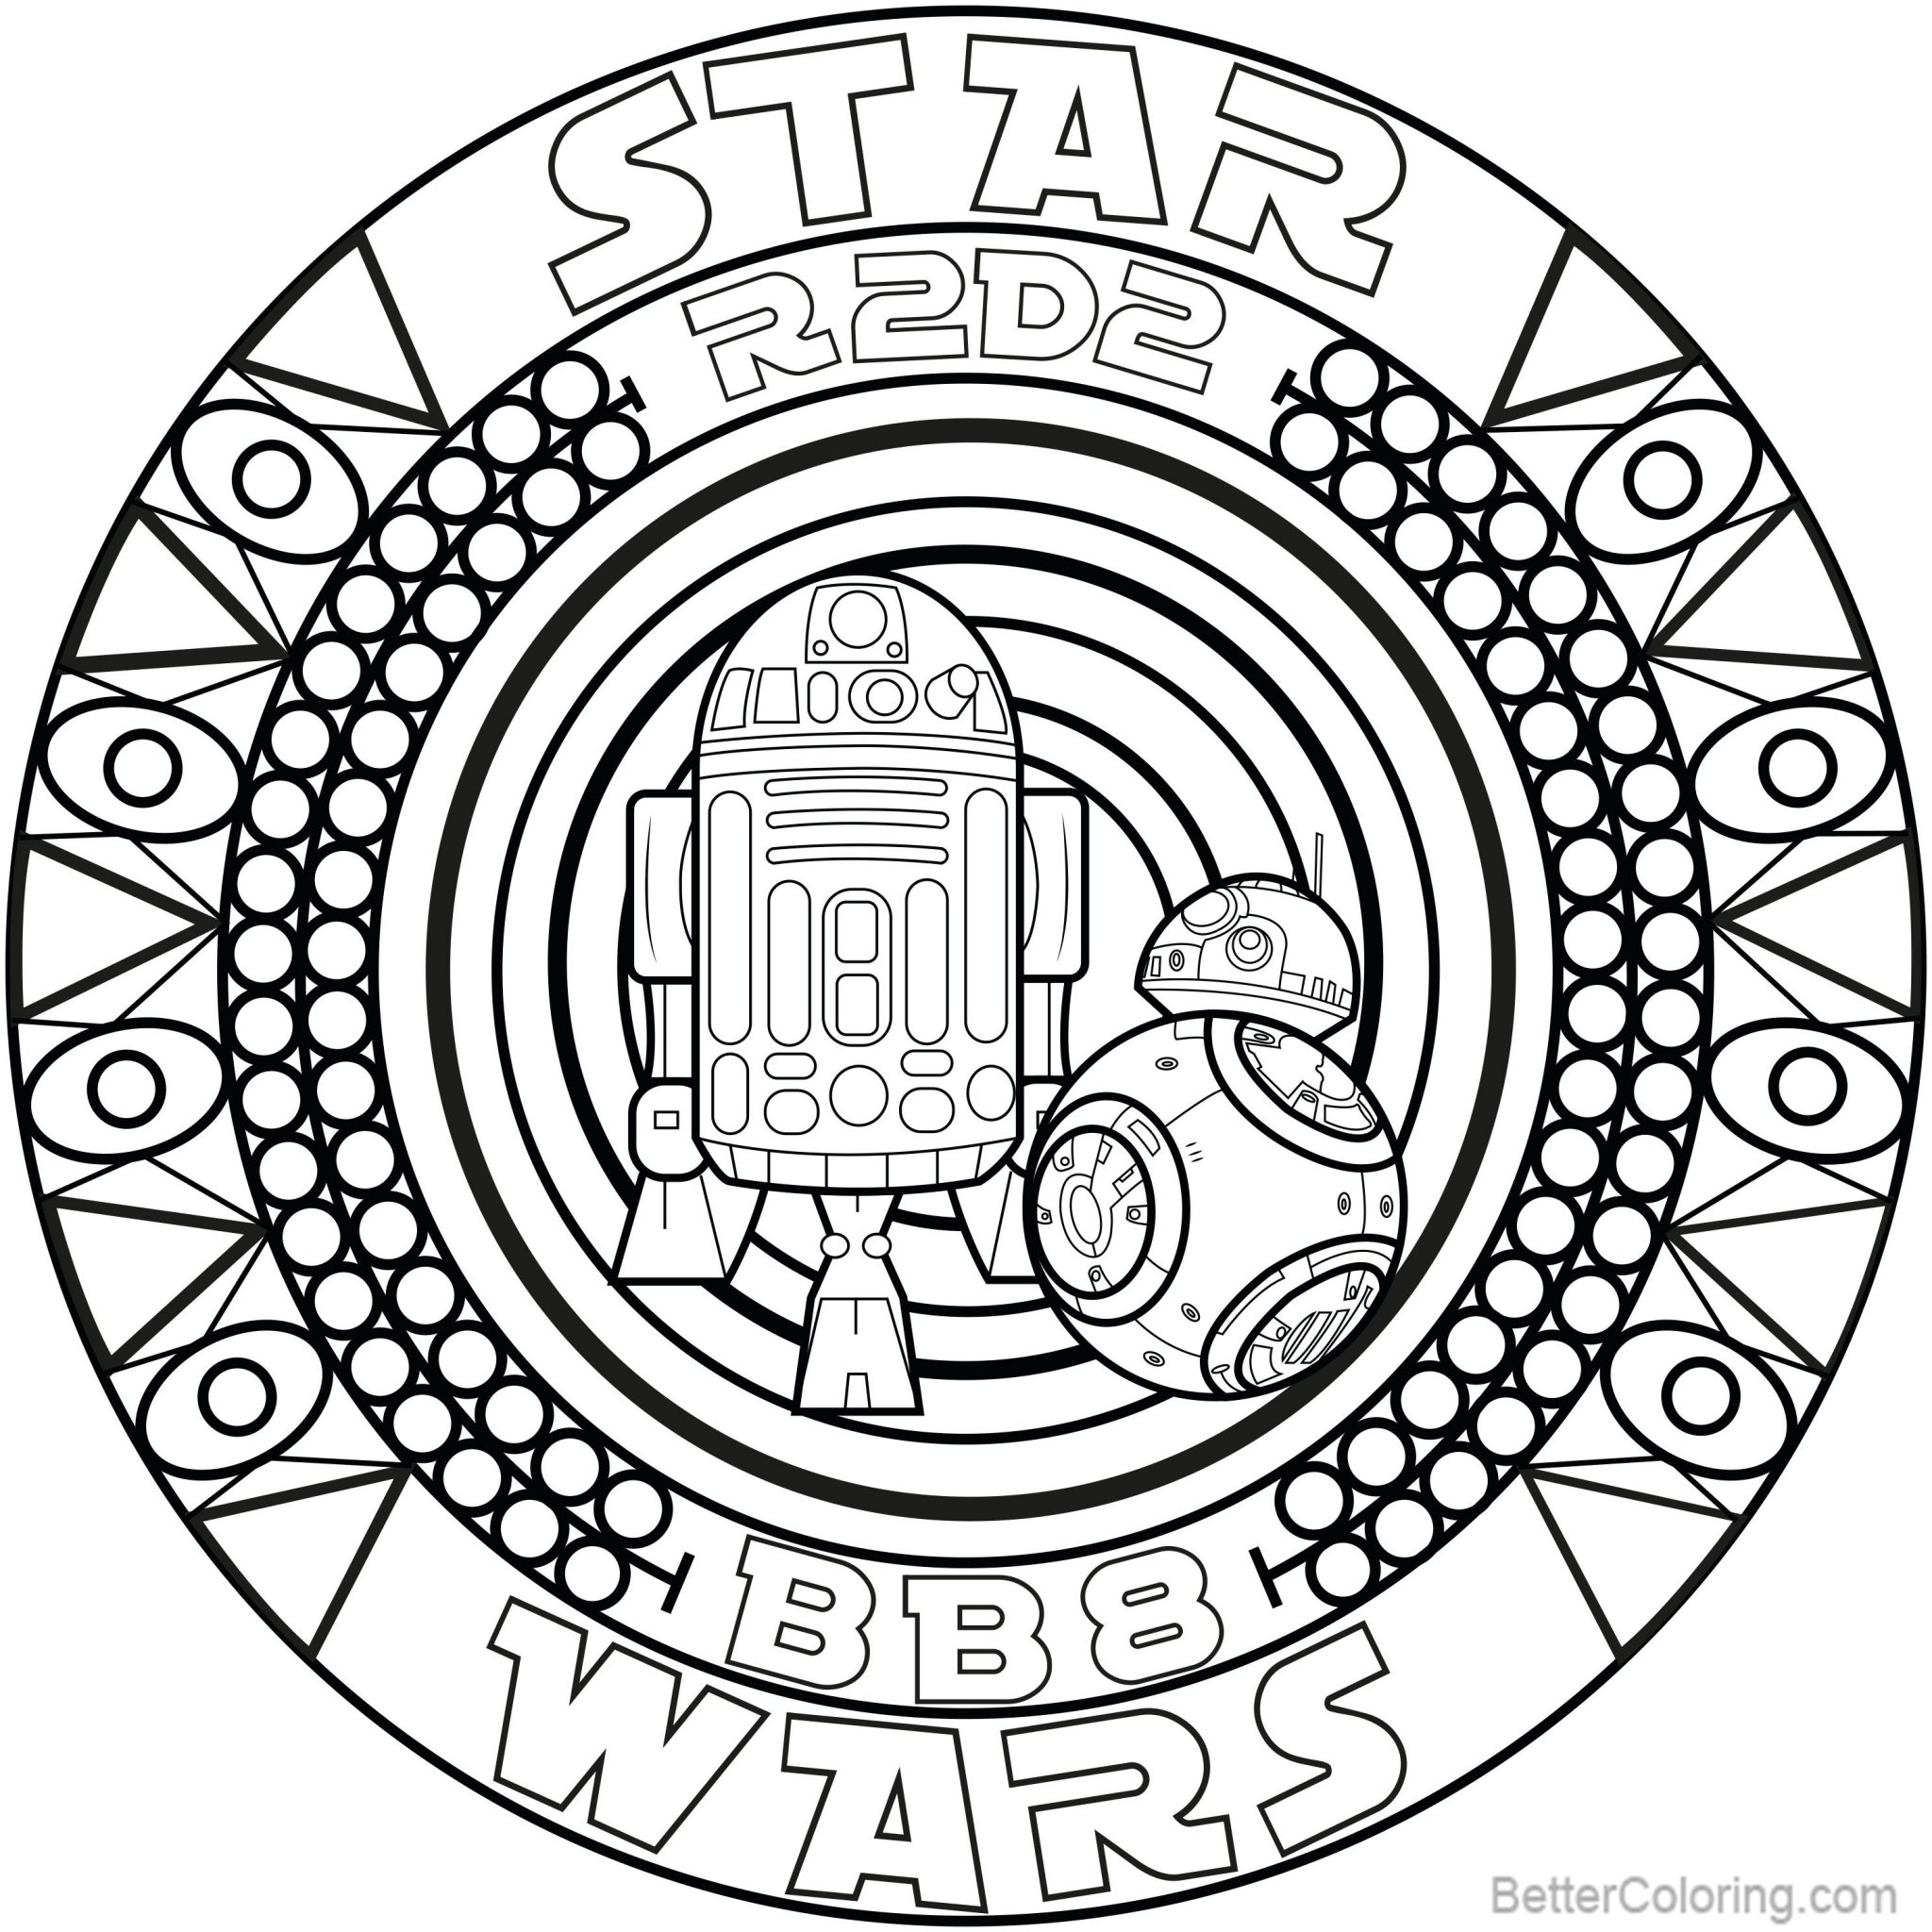 R2D2 Coloring Pages Mandala with bb8 by Allan - Free Printable ...